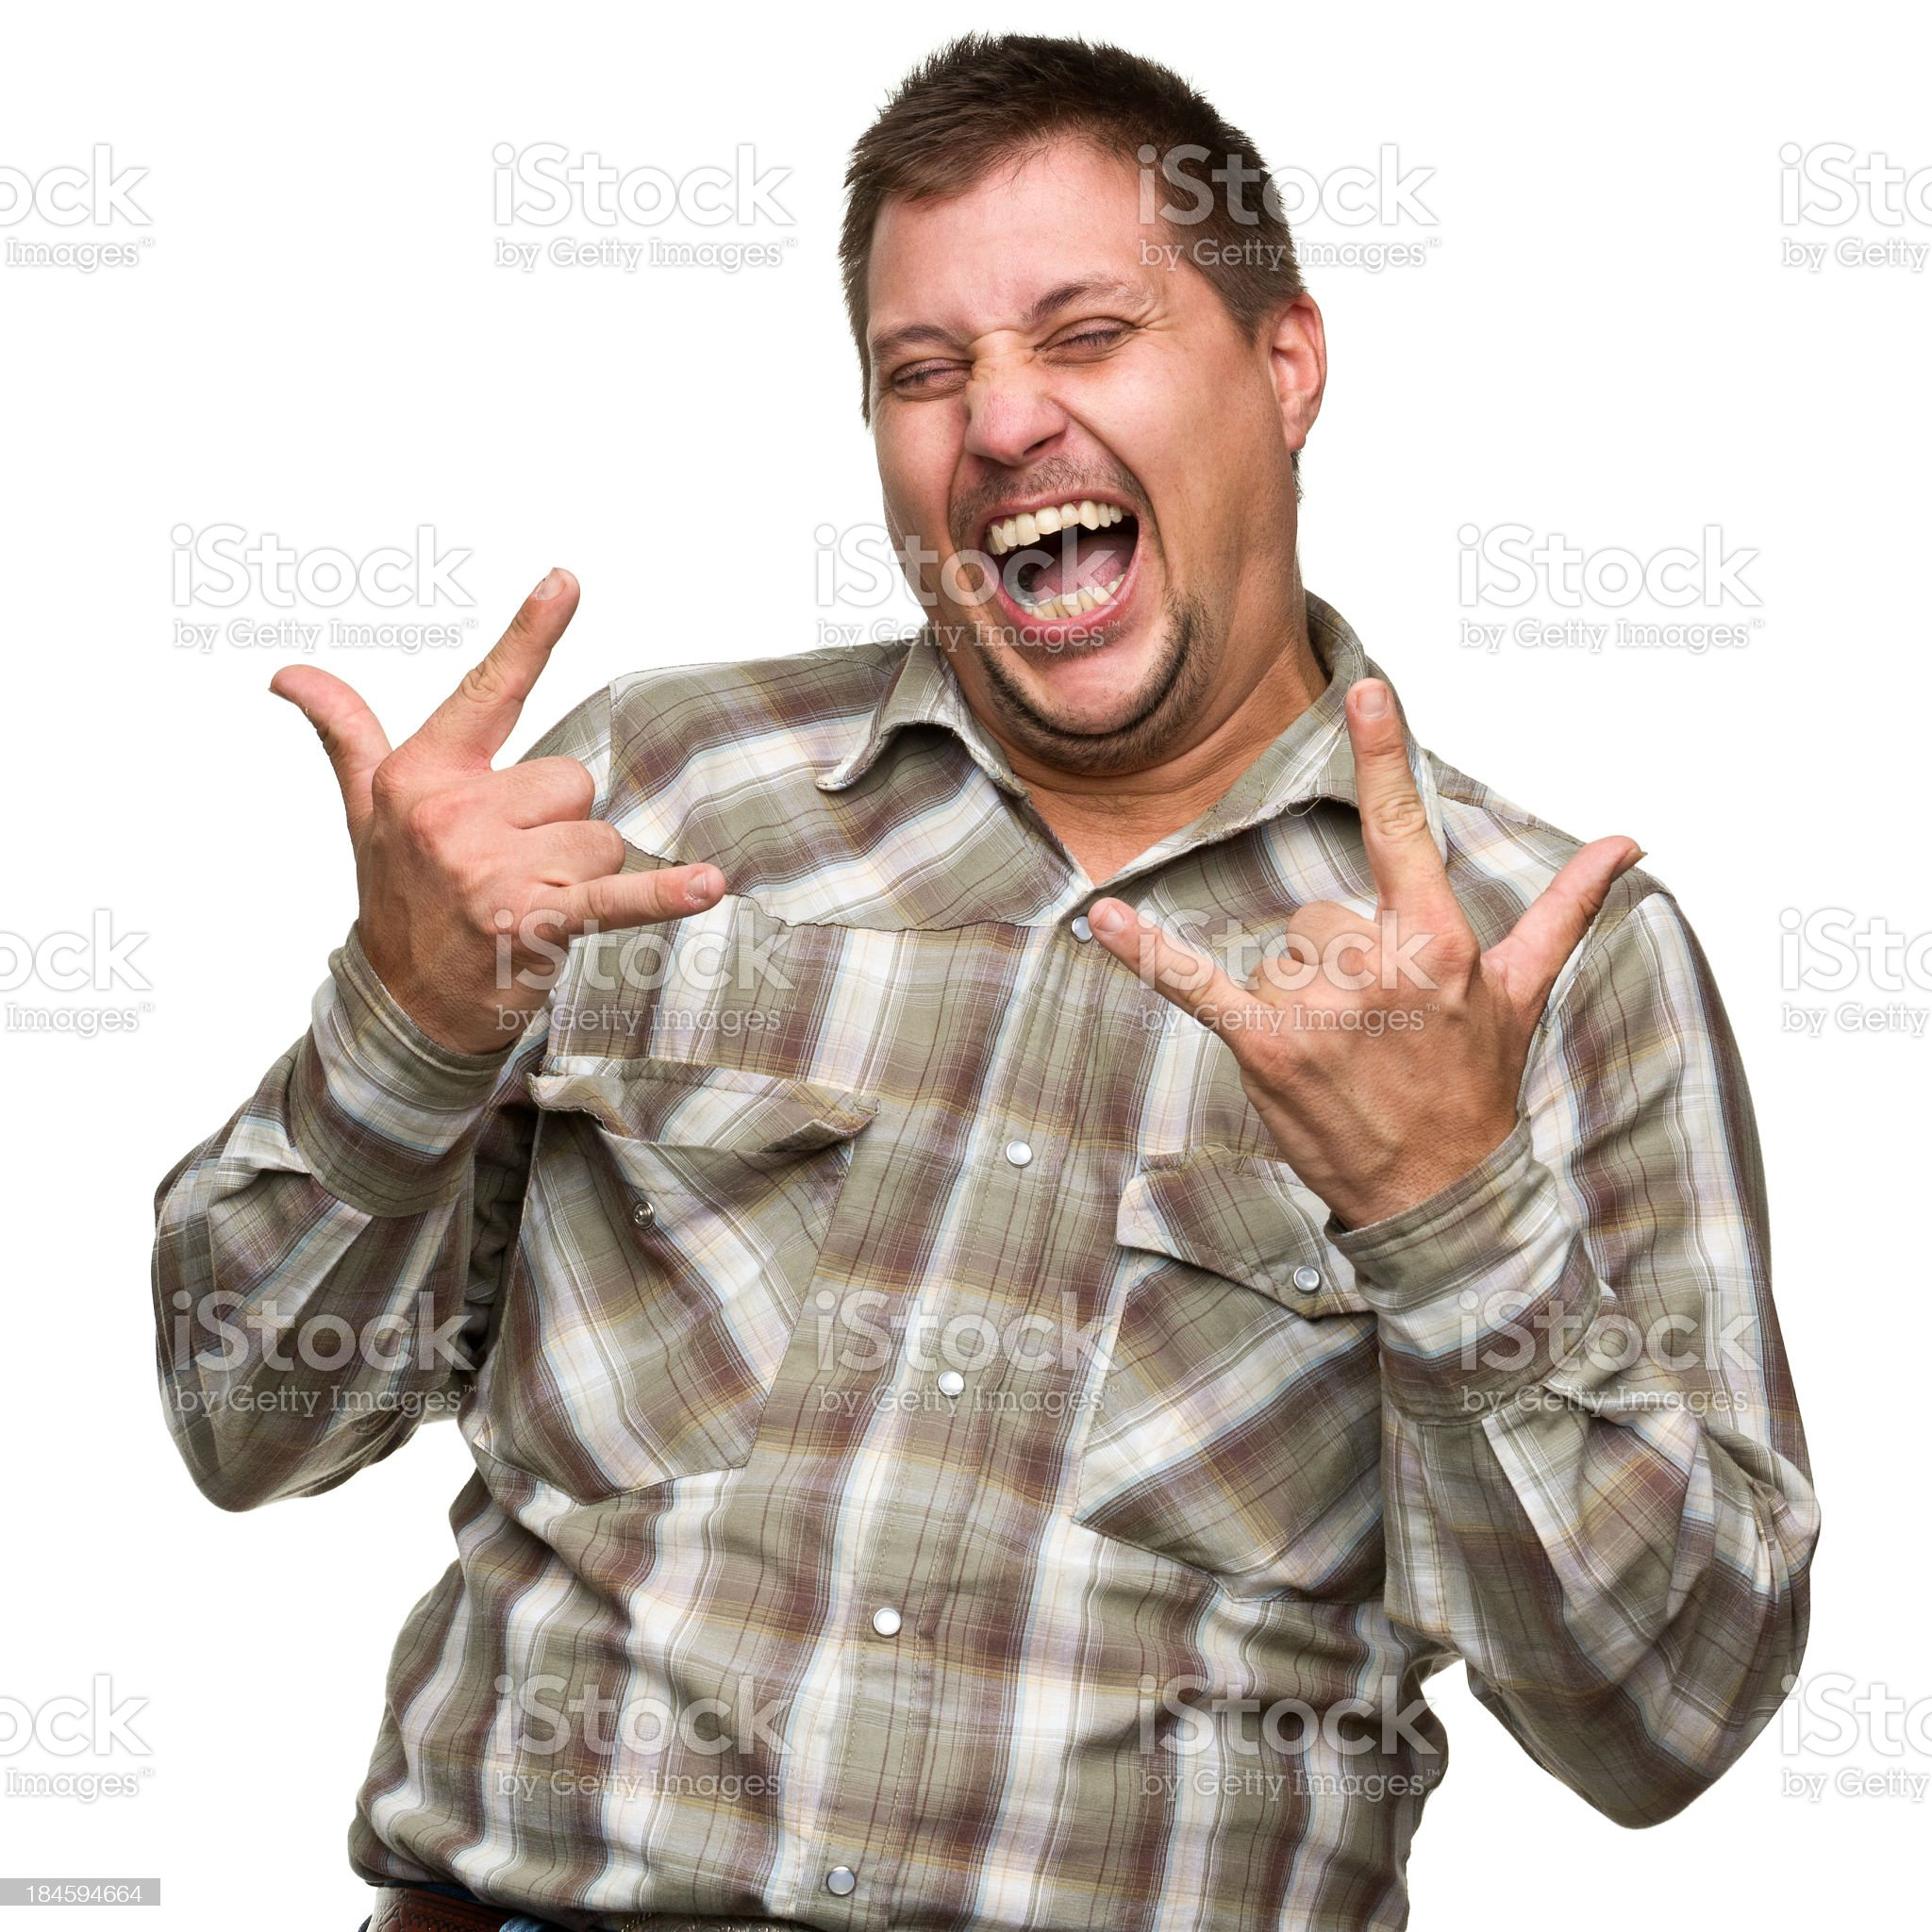 Excited Gesturing Man royalty-free stock photo